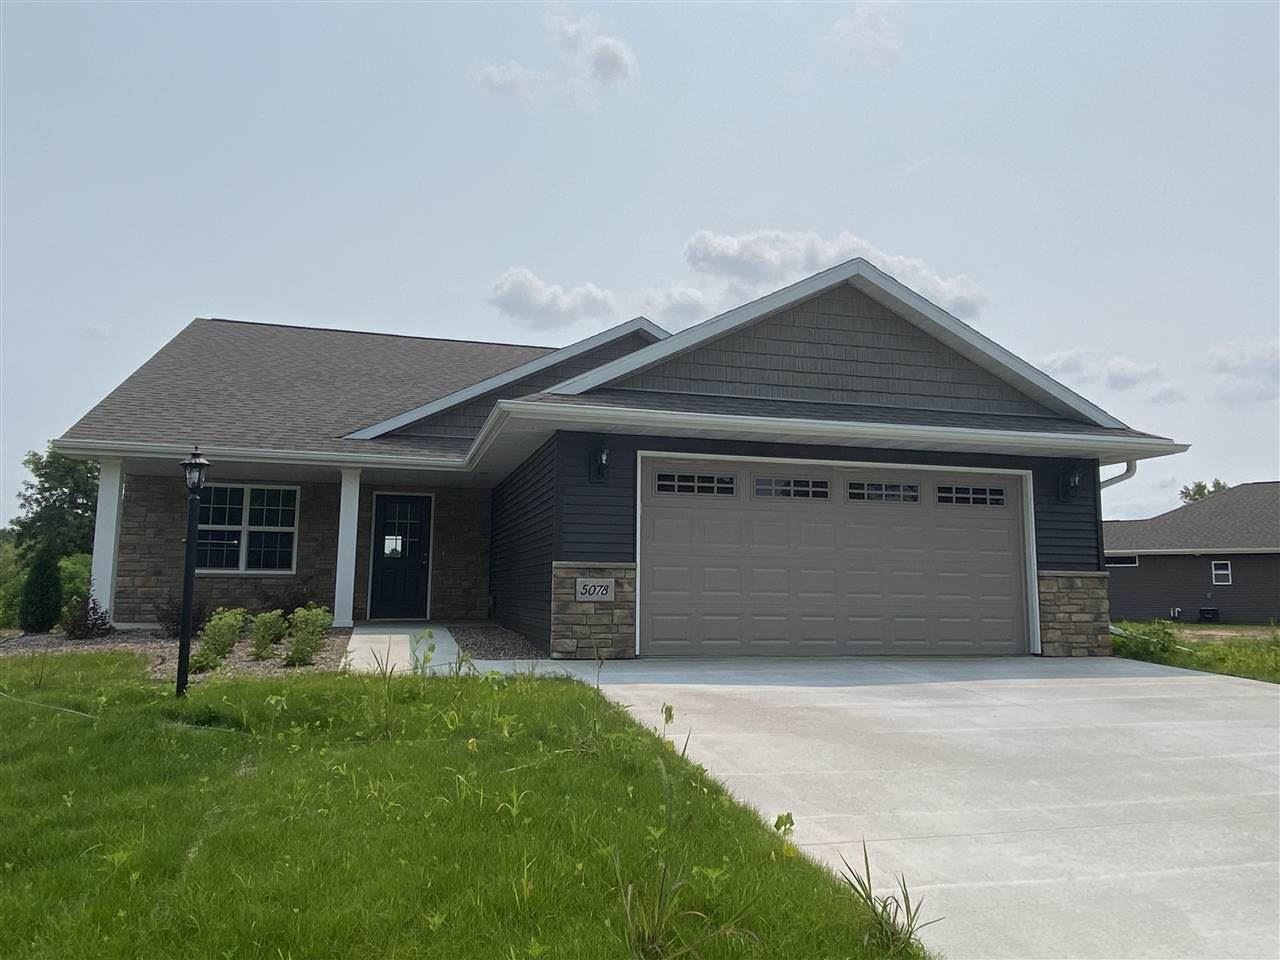 5078 N MILKWEED Trail, Appleton, WI 54913 - MLS#: 50234140